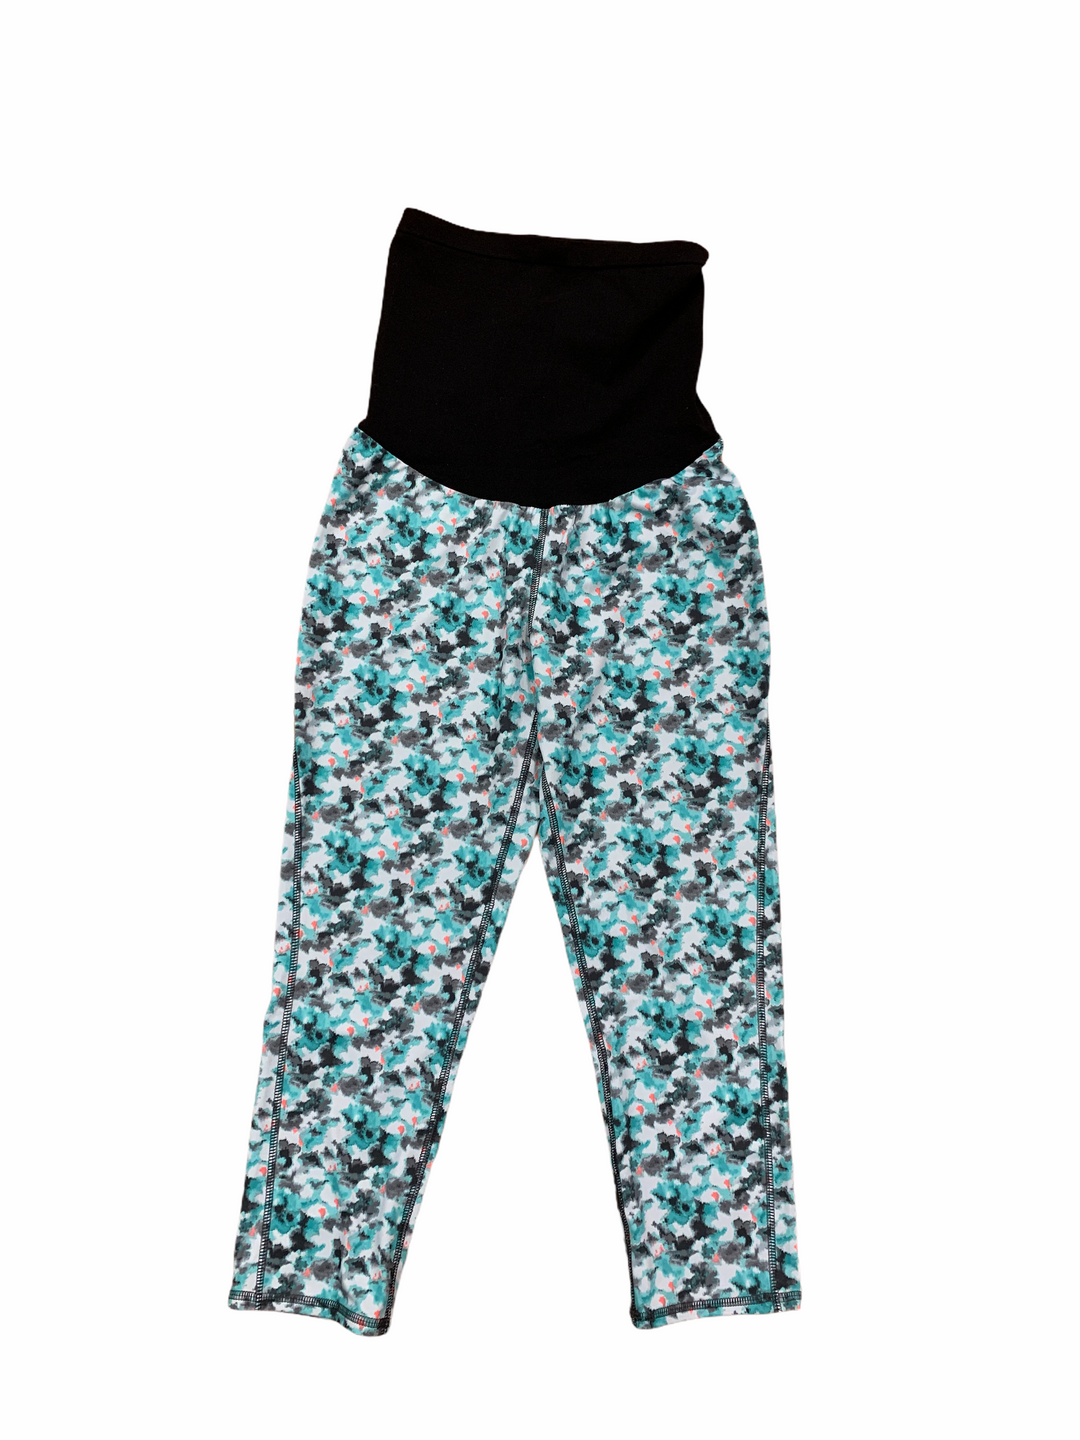 Primary Photo - BRAND: OH BABY BY MOTHERHOOD <BR>STYLE: ATHLETIC CAPRIS <BR>COLOR: BLUE GREEN <BR>SIZE: S <BR>SKU: 223-22318-117877